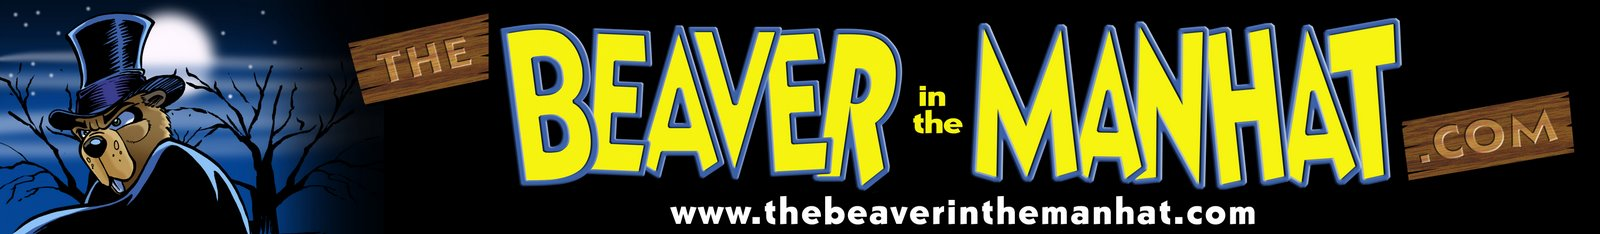 BEAVER NEWS